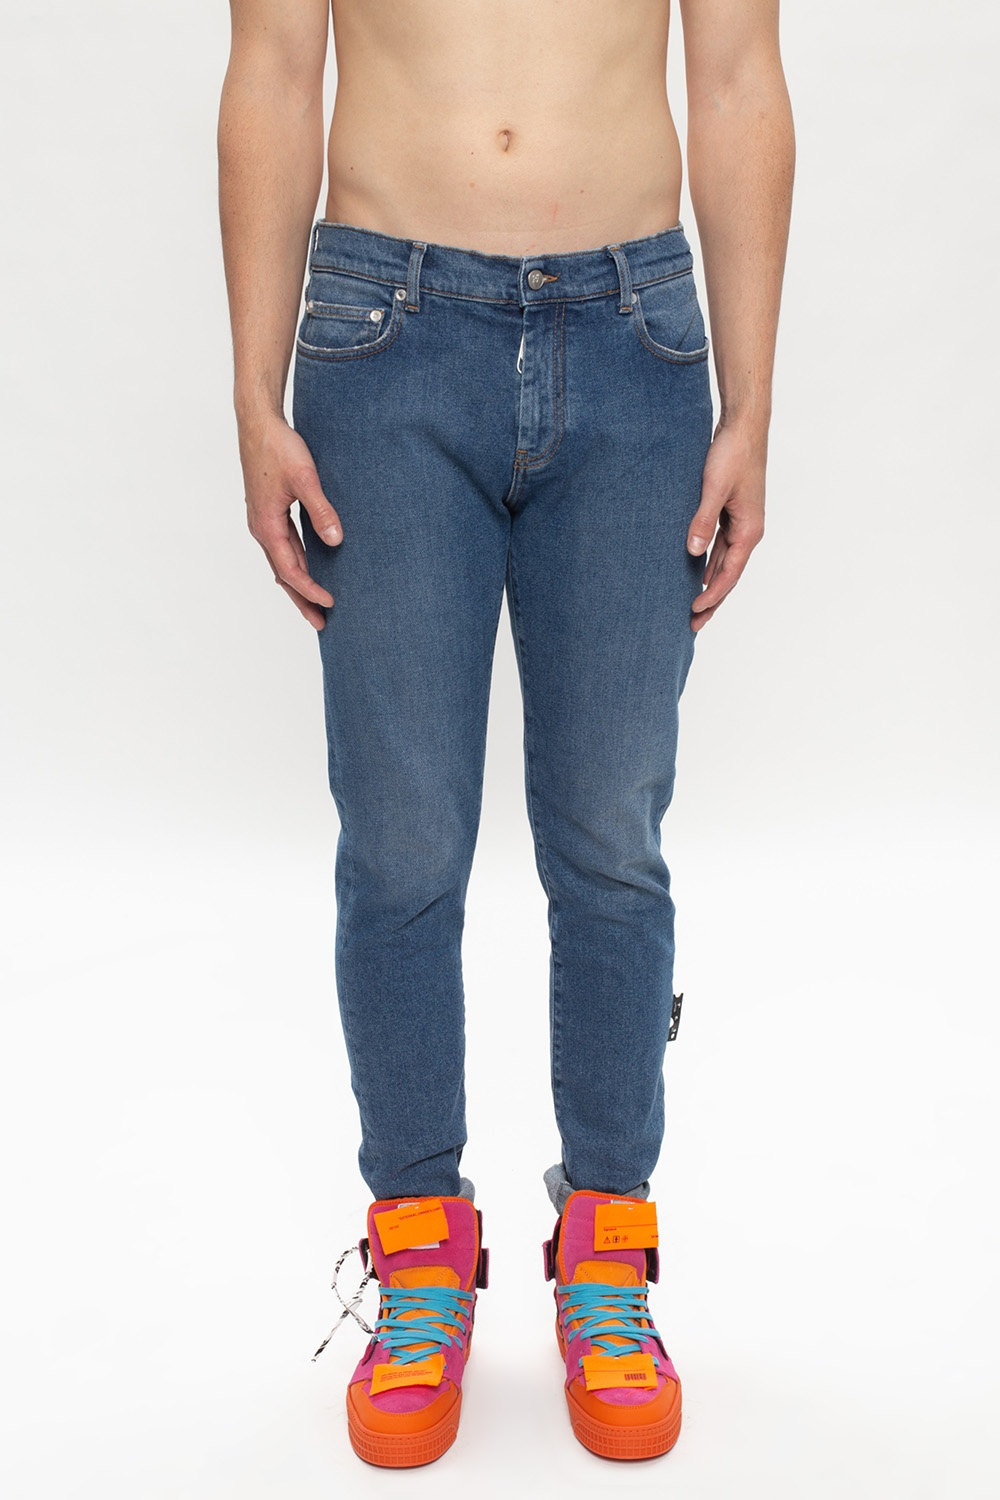 Off-White Printed jeans